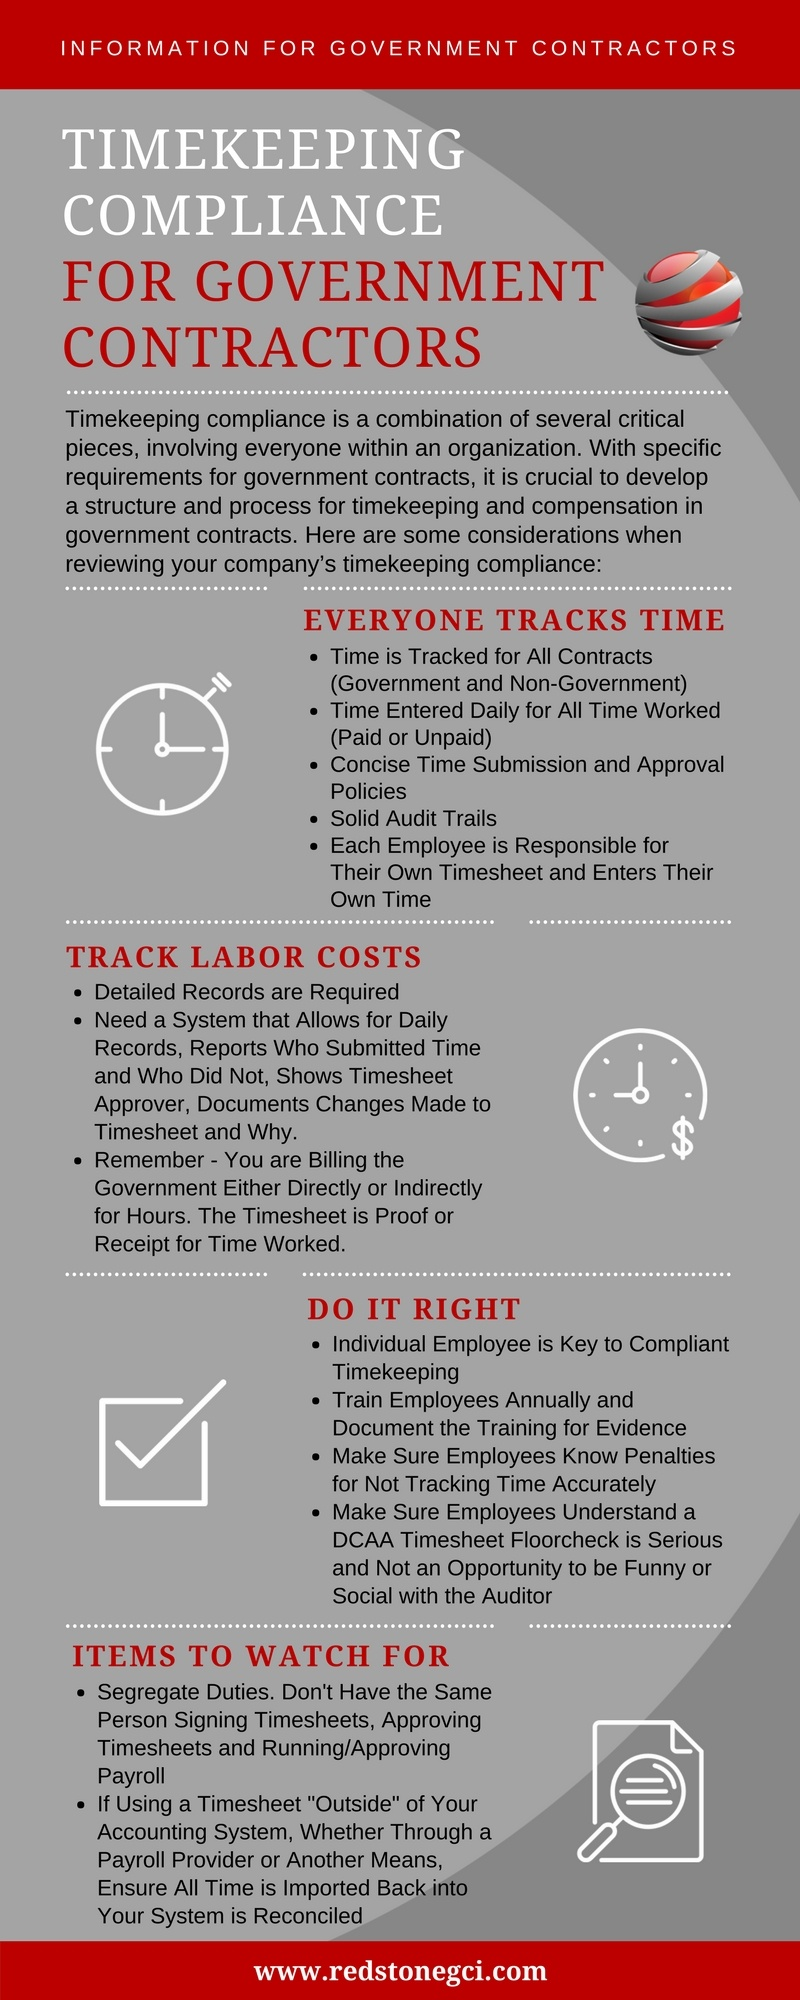 RGCI-Payroll Refresher 002-Infographic.jpg